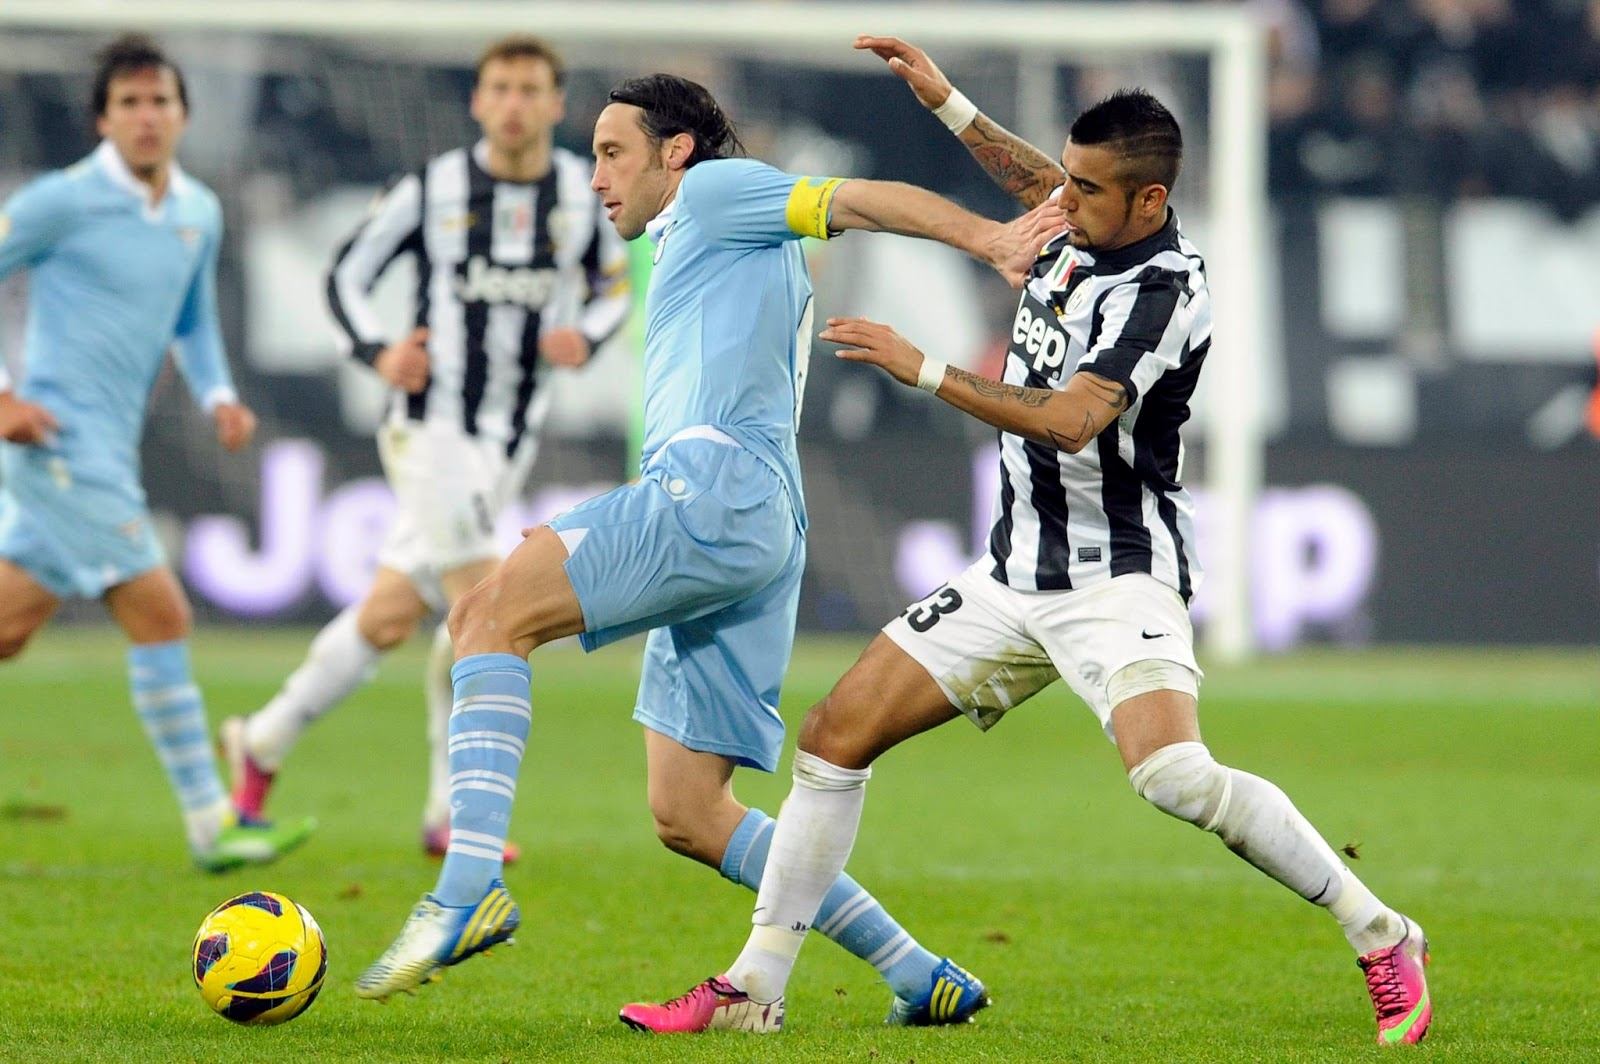 Italy Super Cup: Juventus vs Lazio 08 August « The New Ball